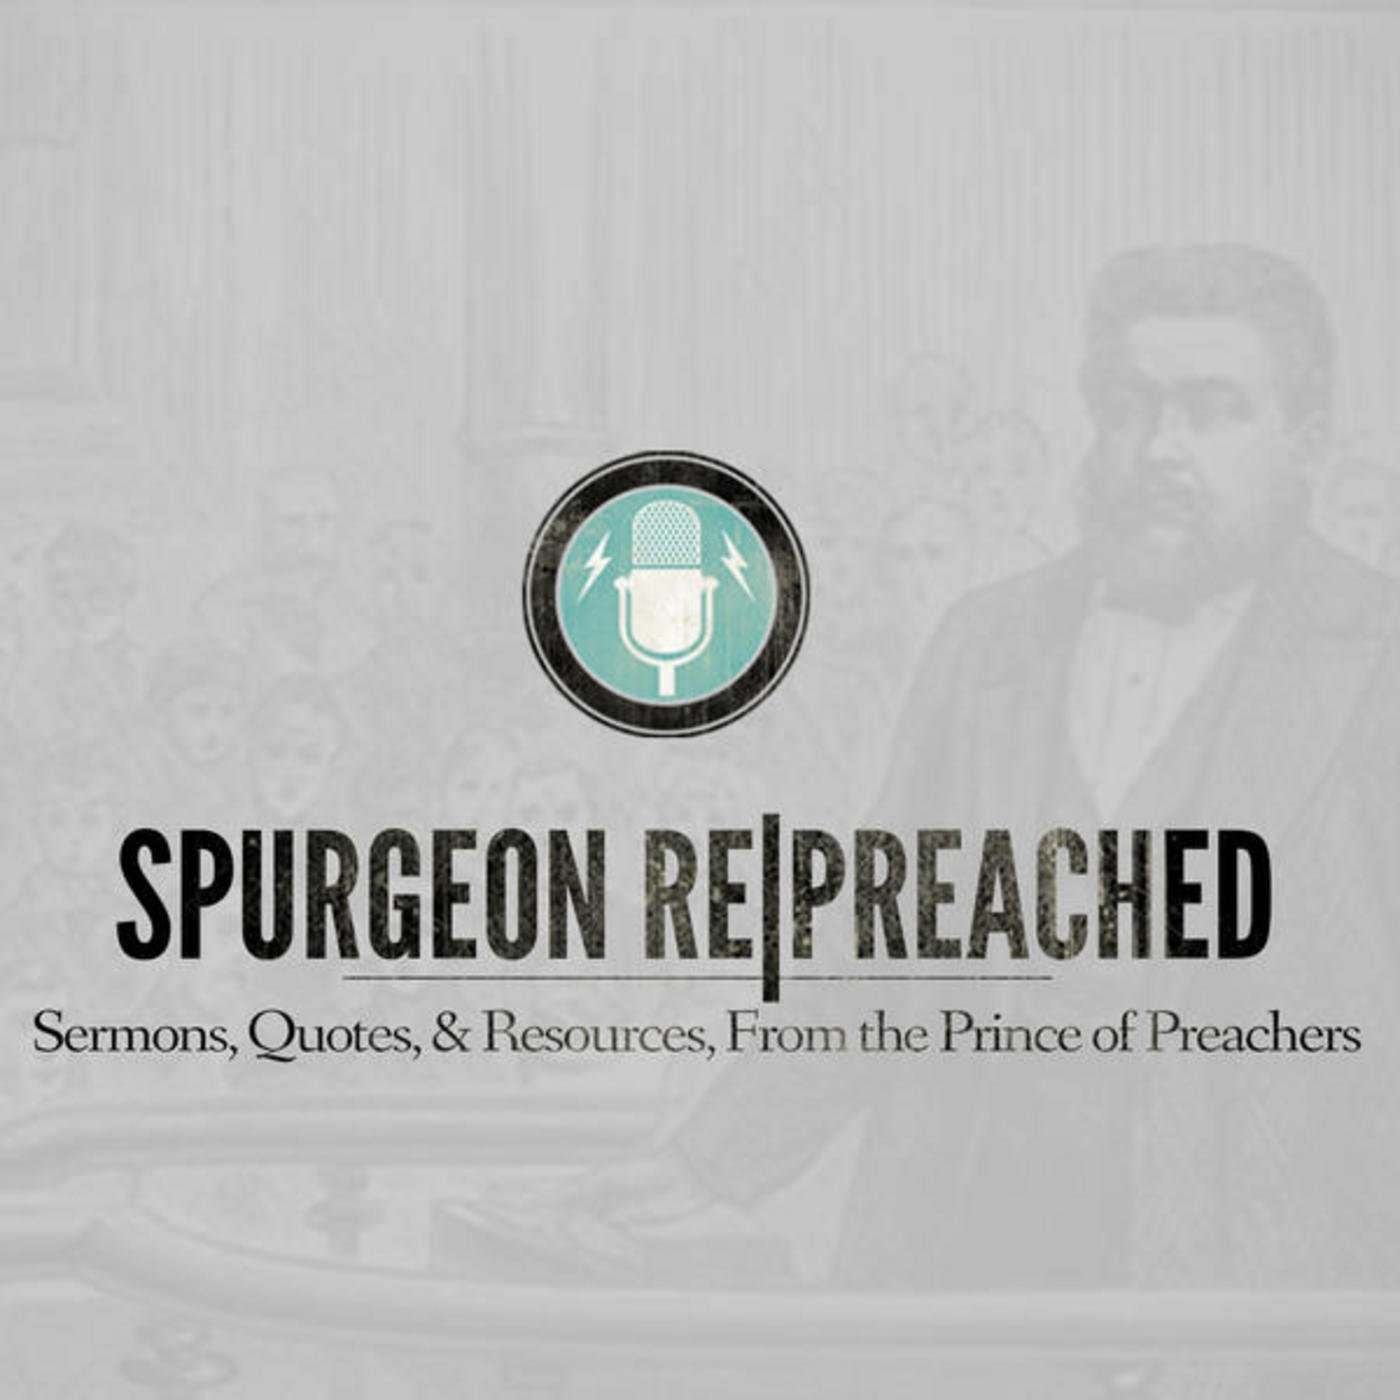 Spurgeon RePreached | Sermon 24: Forgiveness (Isaiah 43:25)